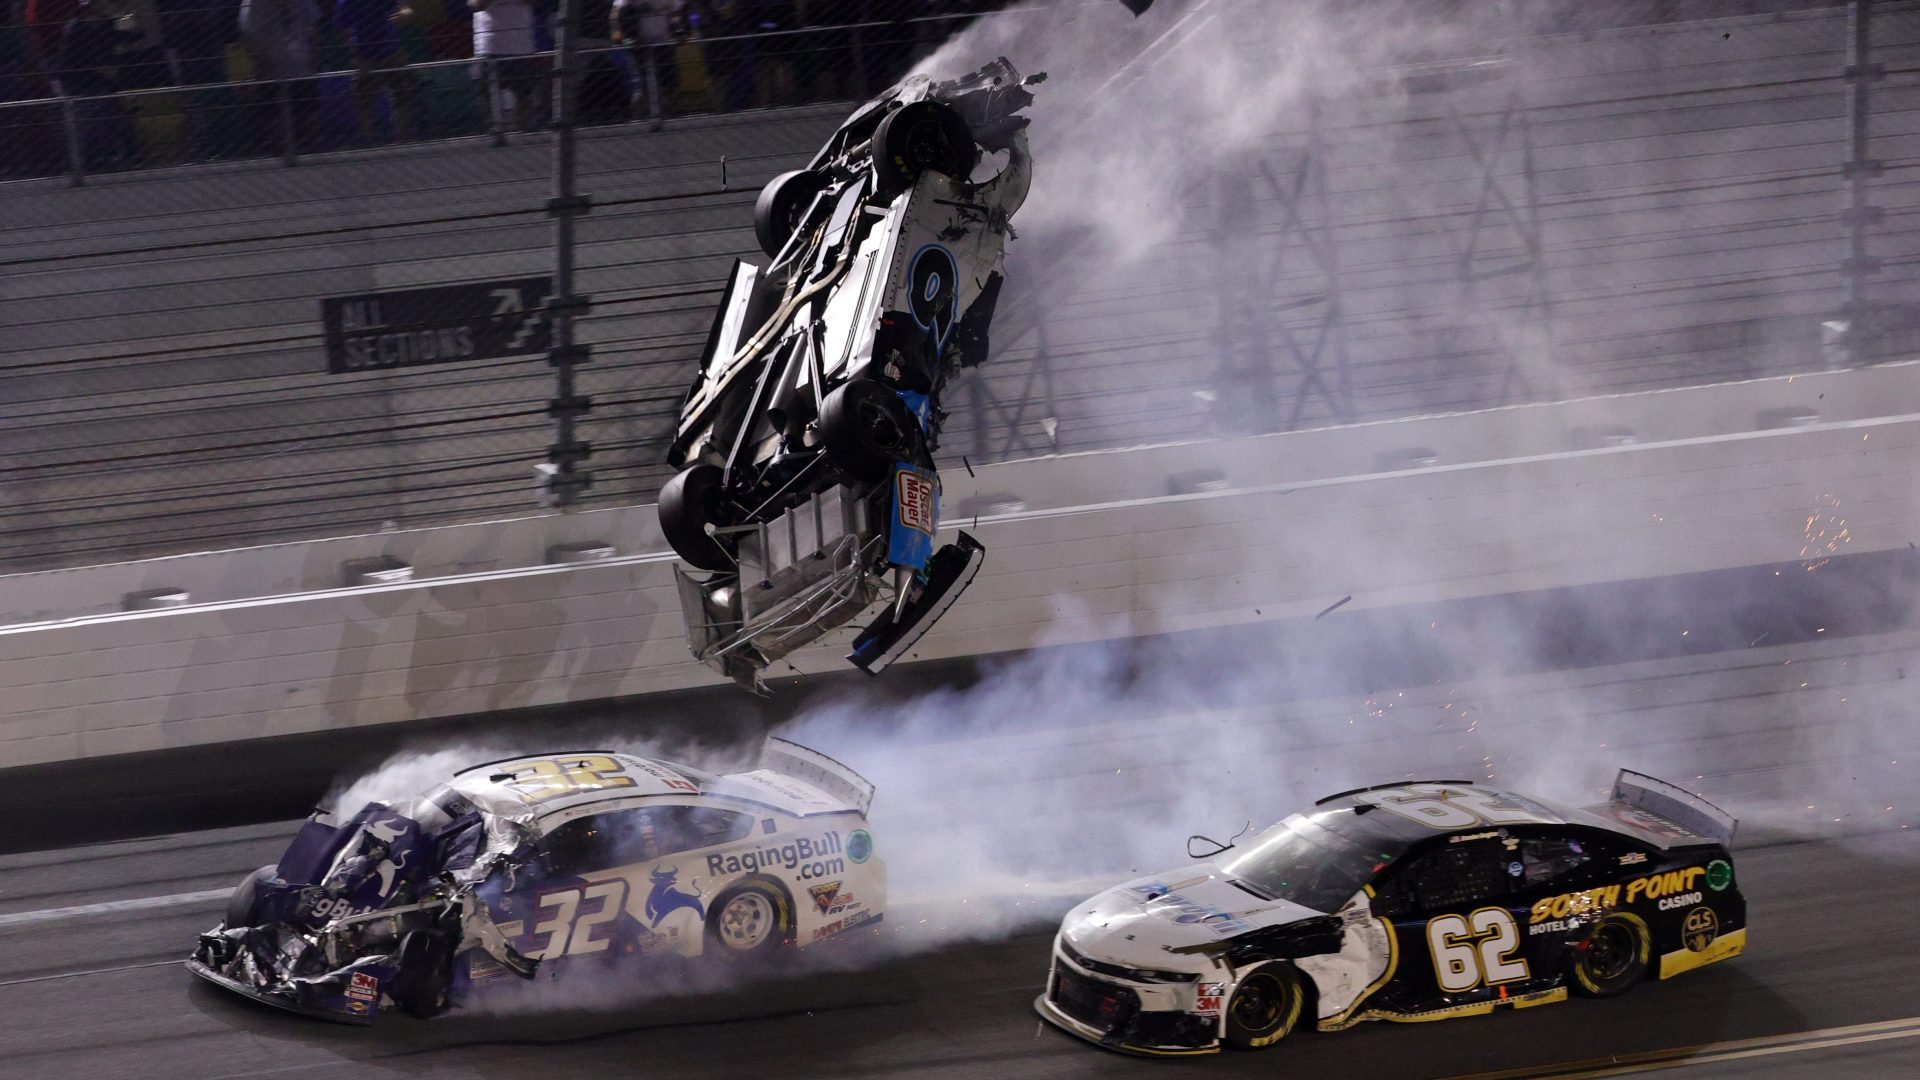 Ryan Newman in serious condition but injuries are not life 1920x1080